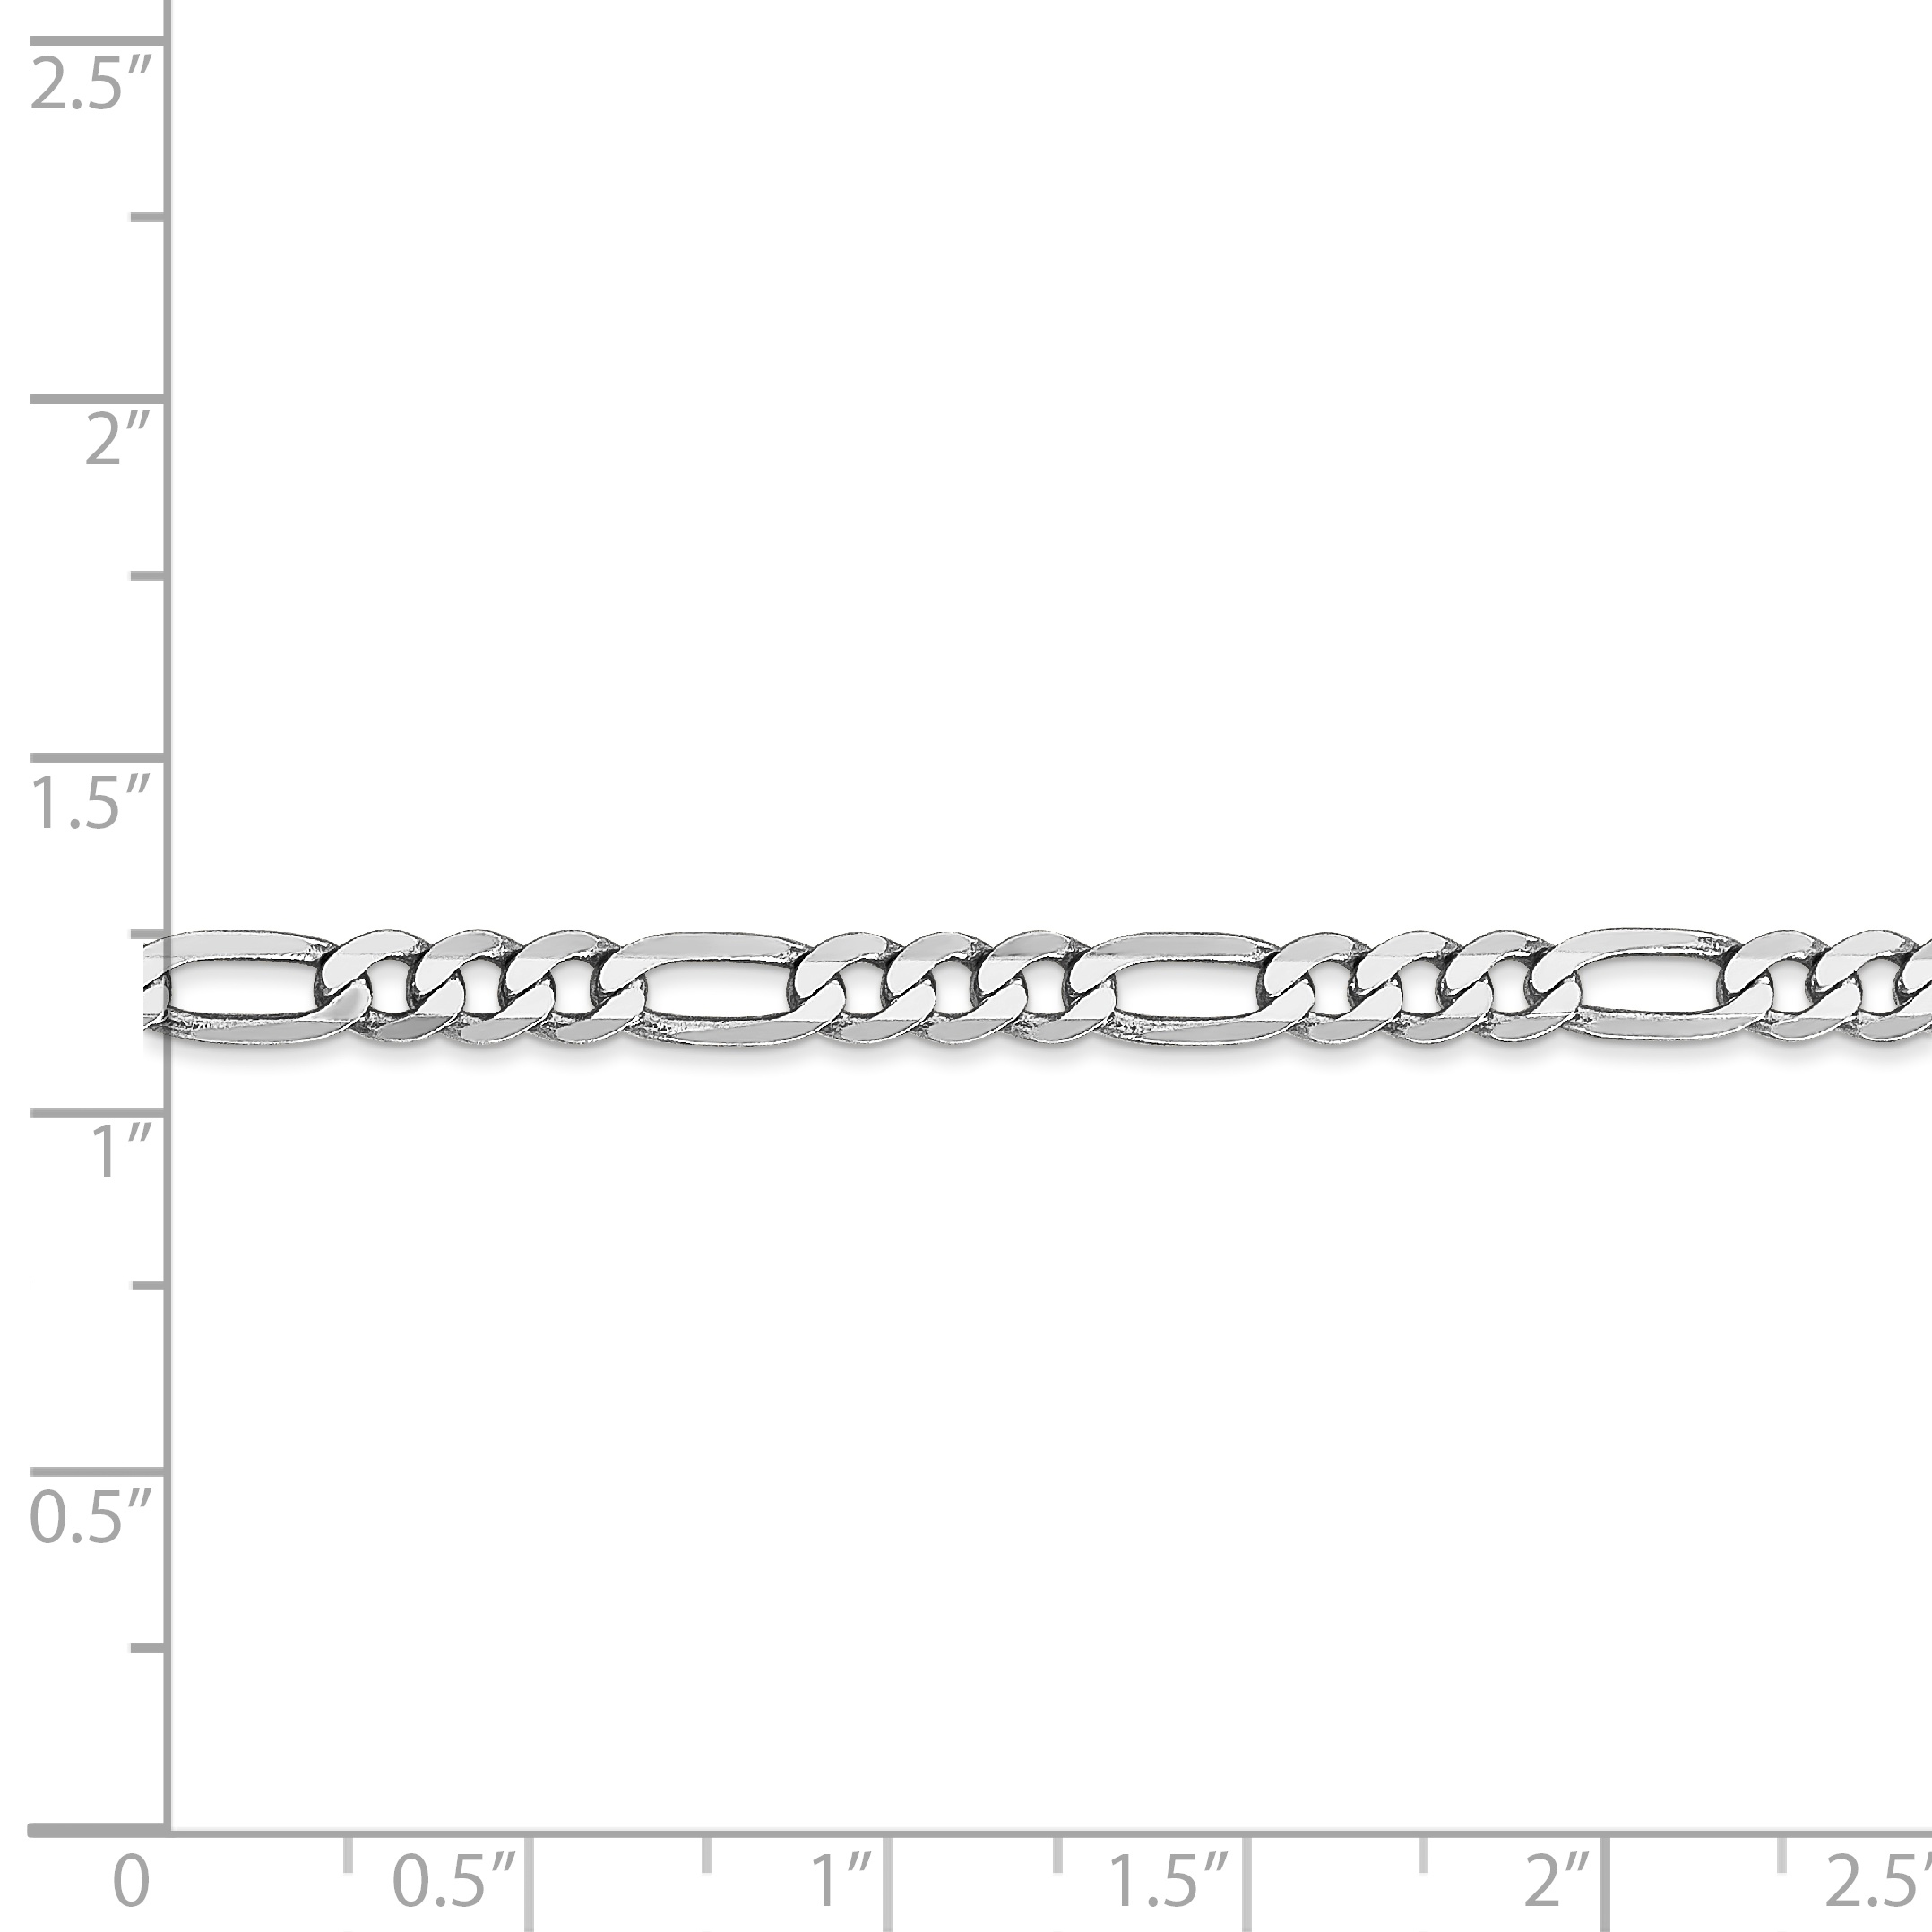 14k White Gold 4mm Flat Link Figaro Bracelet Chain 8 Inch Fine Jewelry Gifts For Women For Her - image 2 of 4